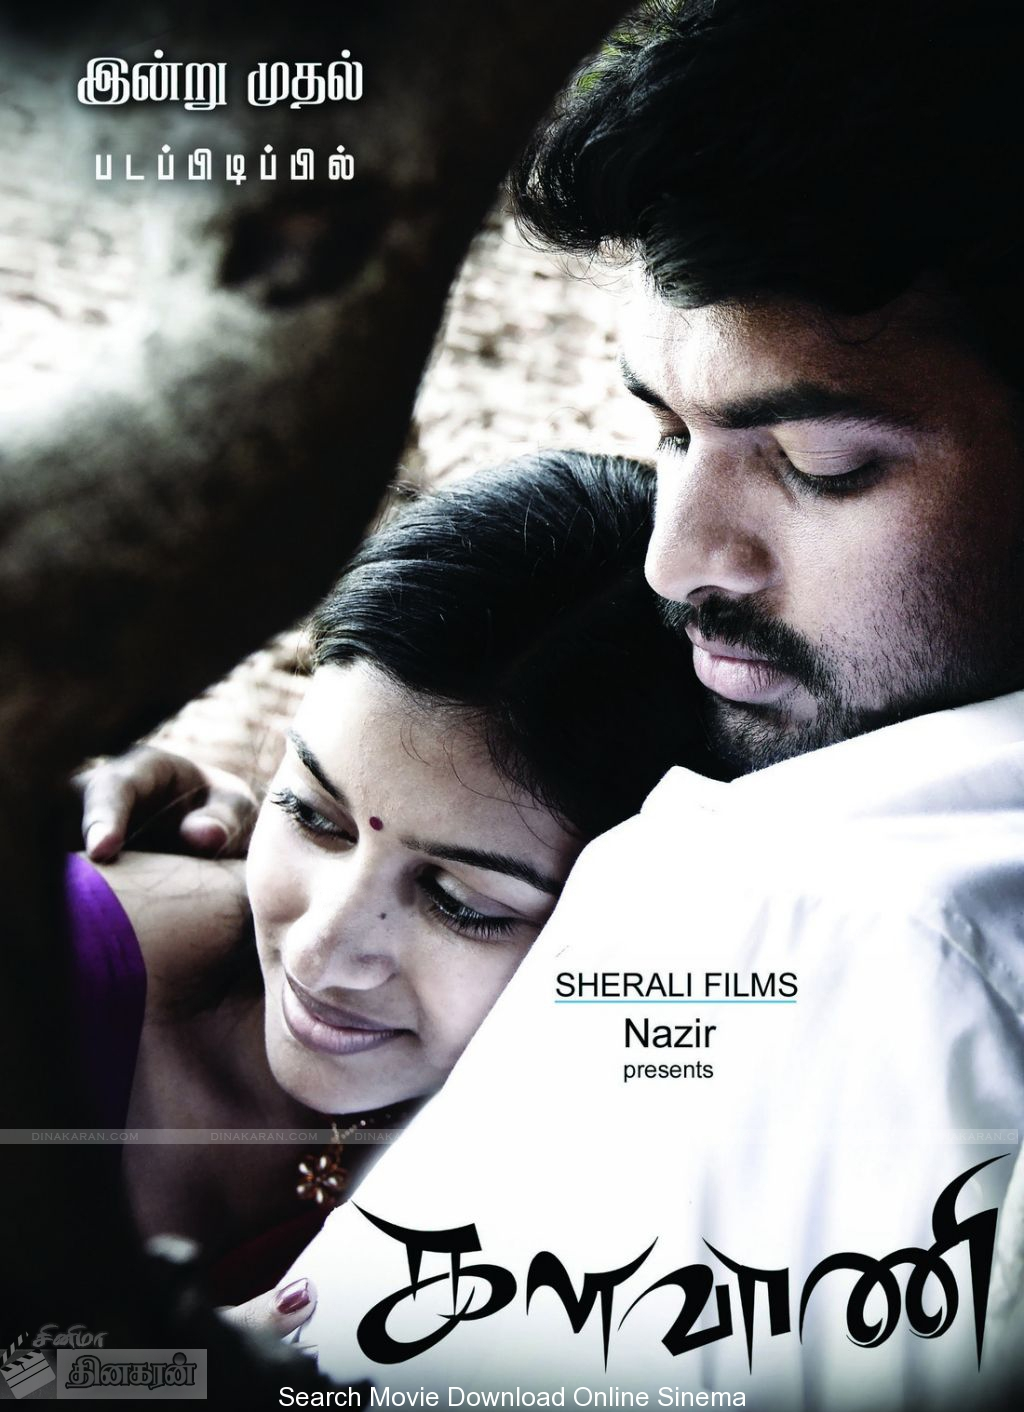 http://1.bp.blogspot.com/_2NlcRV4bzTk/THZ7TL_EWBI/AAAAAAAABpw/ImCnmRk0qQY/s1600/download-latest-tamil-kalavaani-mp3-songs.jpg